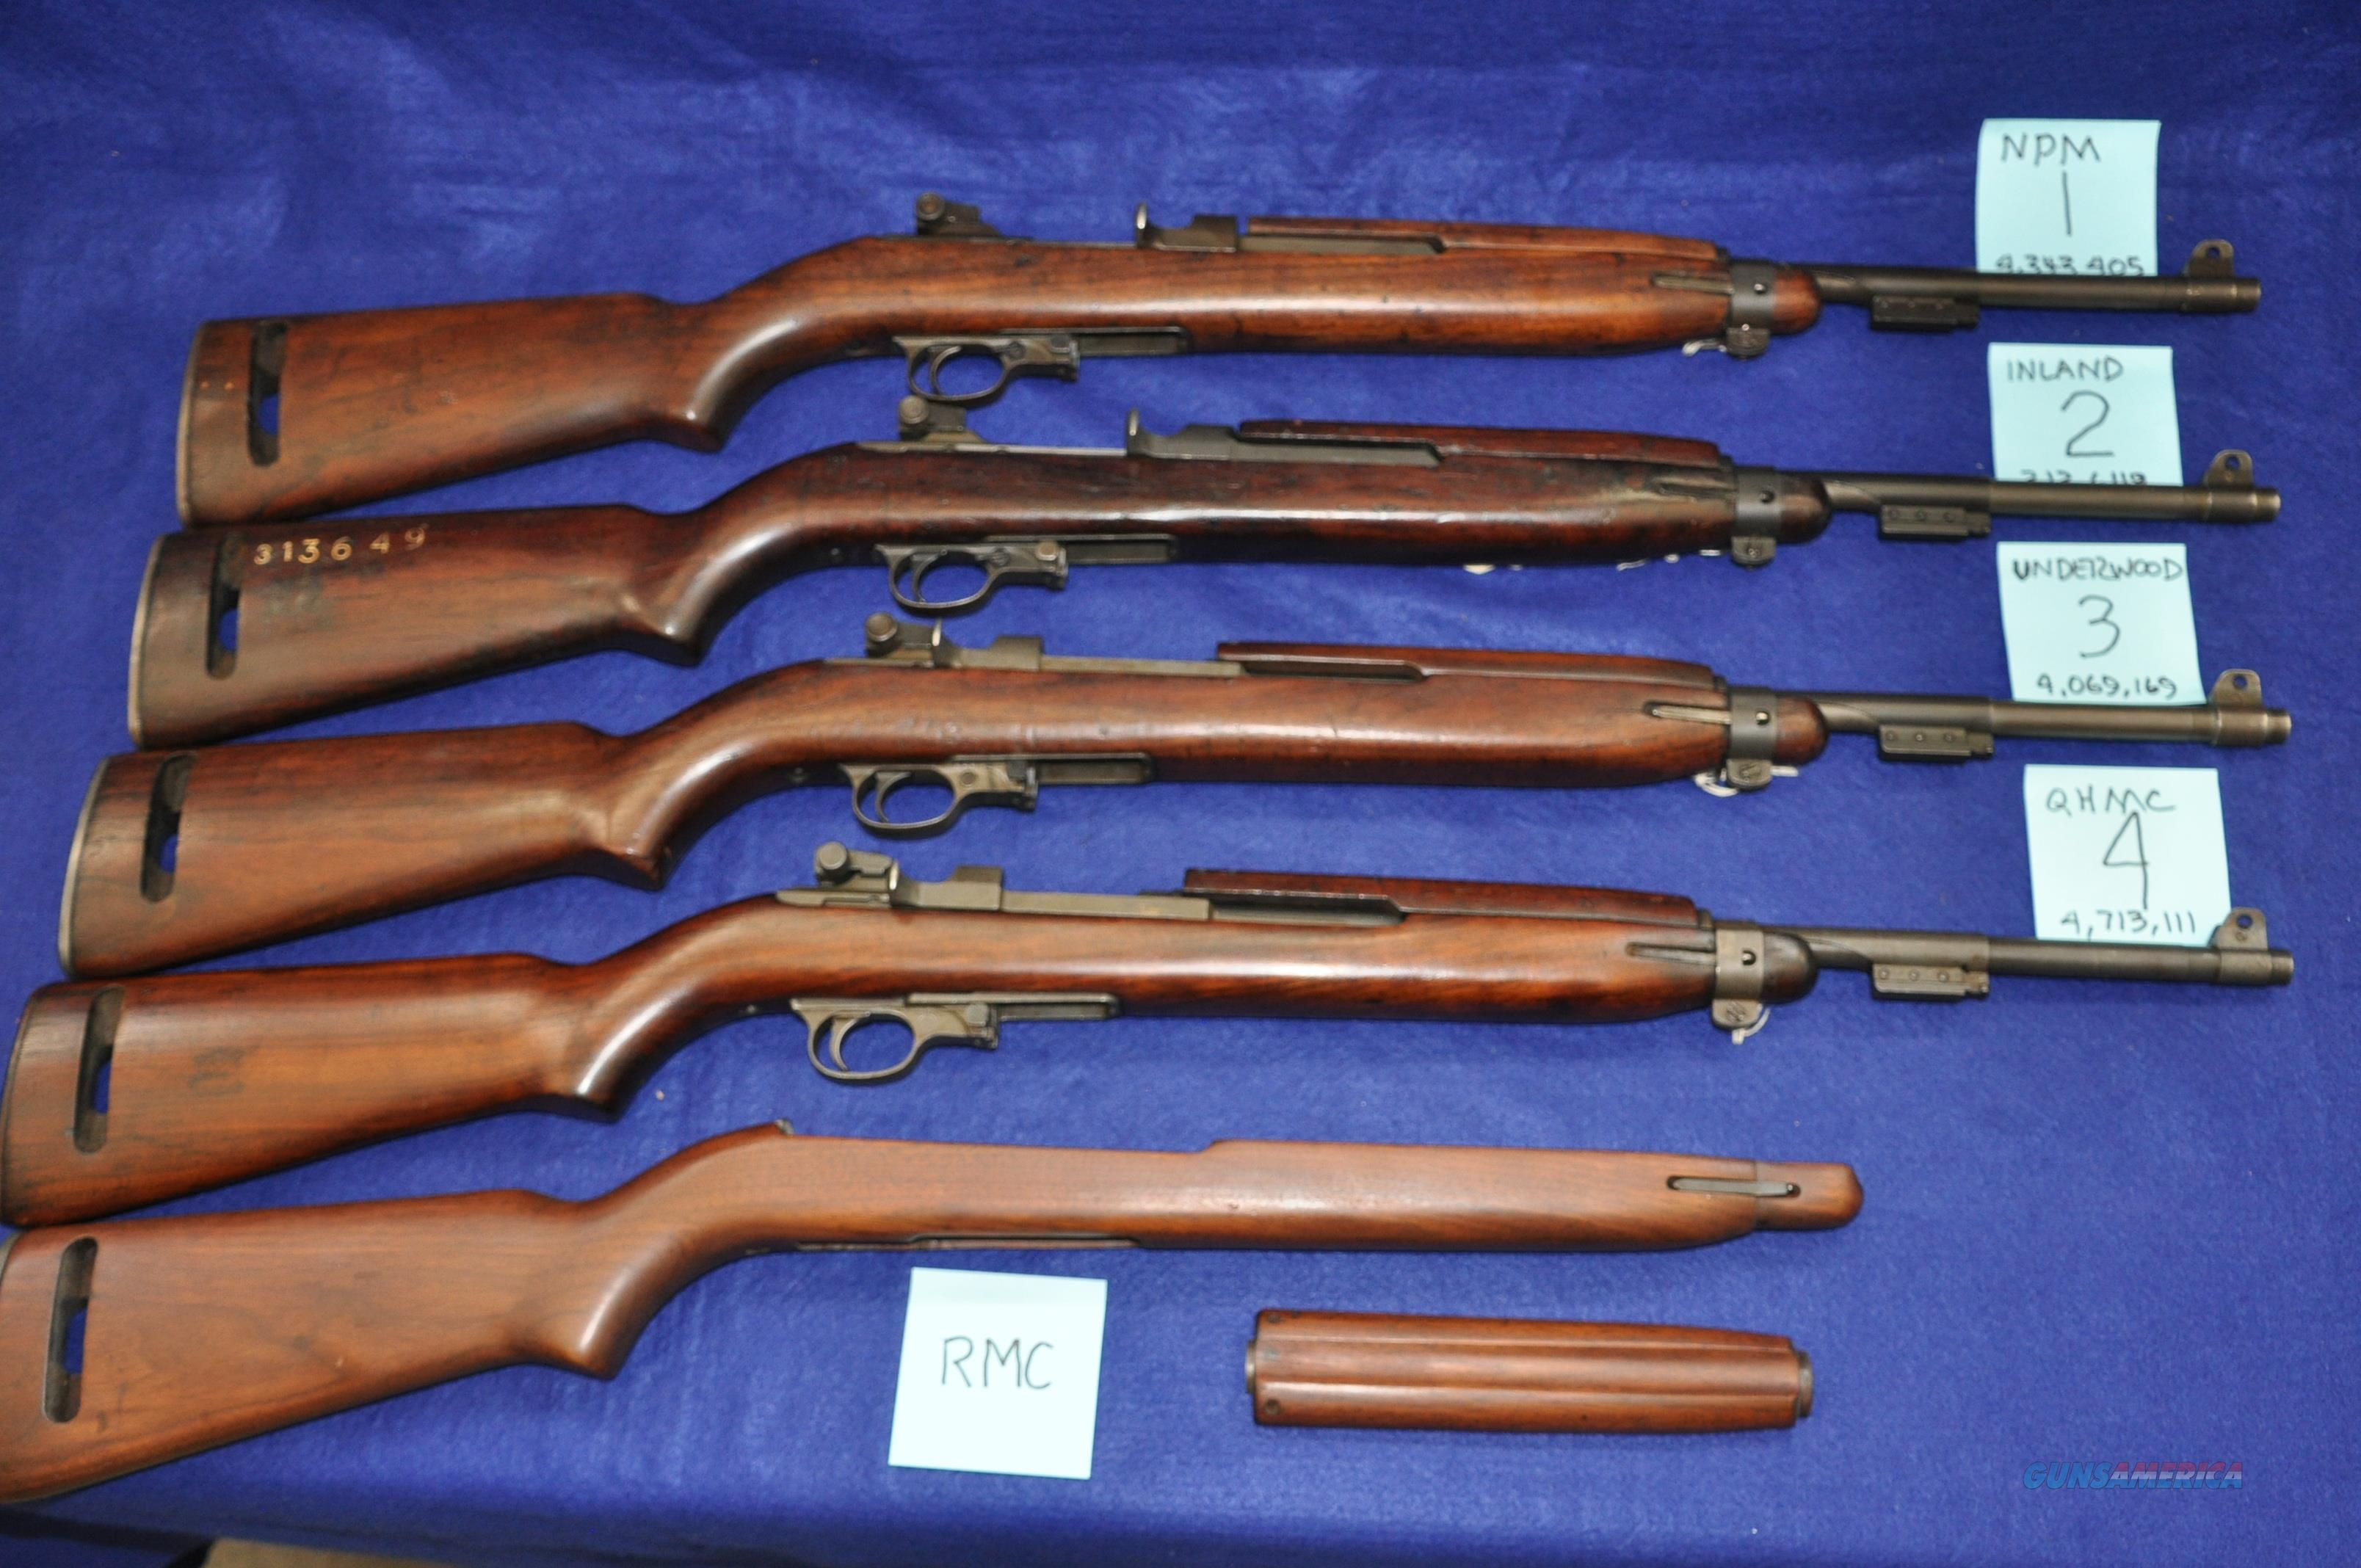 WWII M1 Carbines all arsenal reworks, all Davidsons imports, priced seperately   Guns > Rifles > Military Misc. Rifles US > M1 Carbine